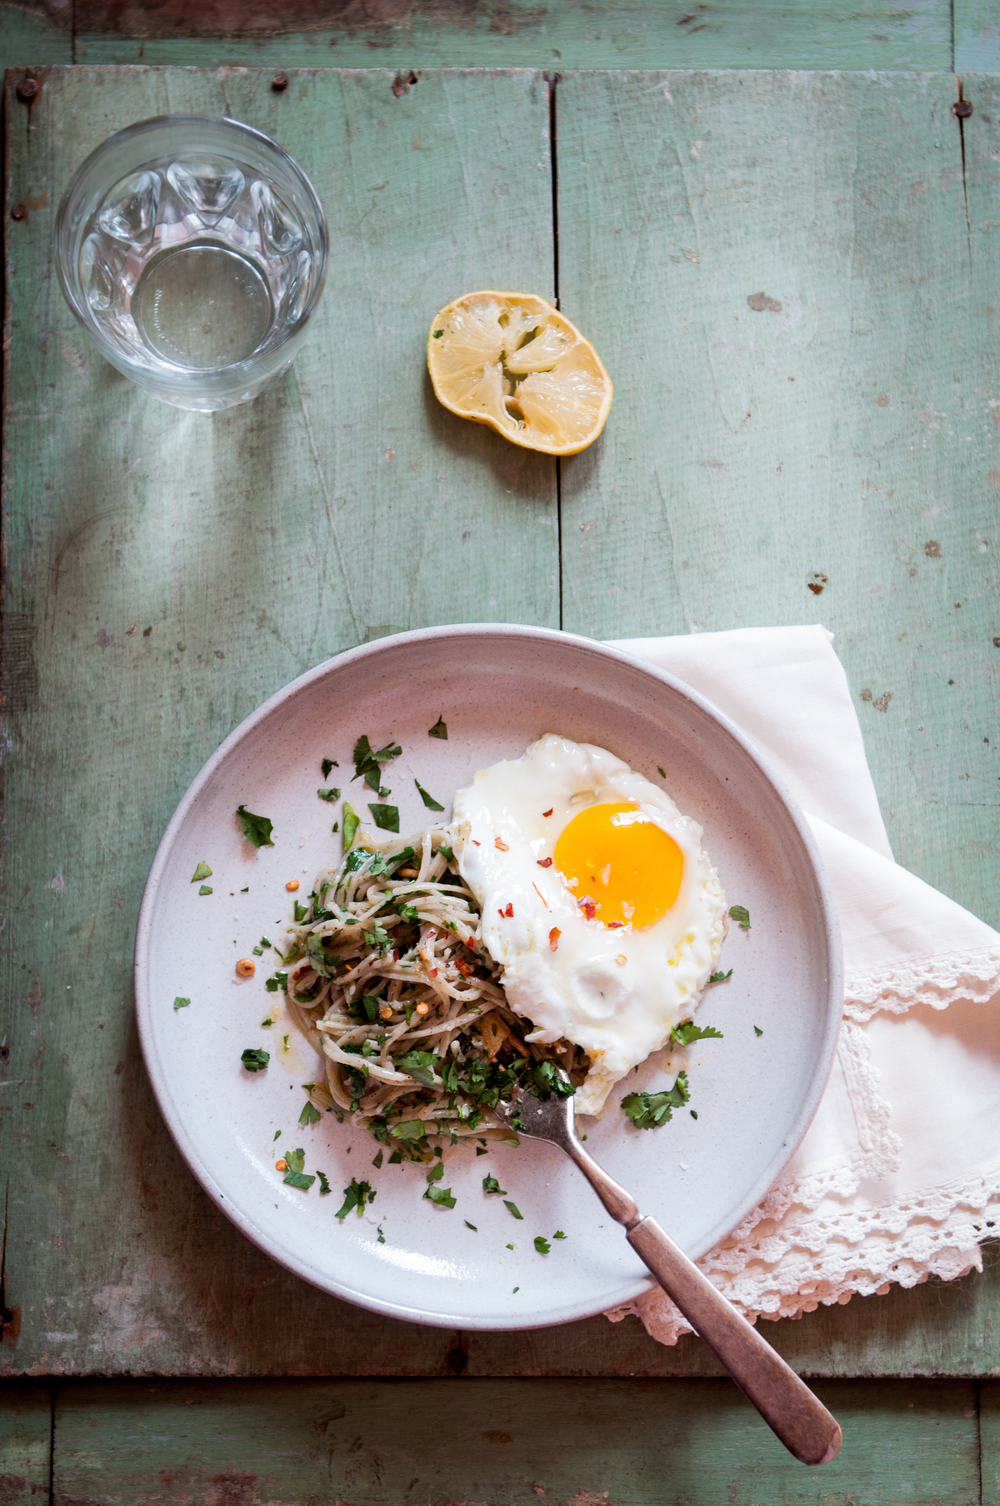 Garlic-Cilantro-Oil-Pasta-with-Fried-egg.jpg